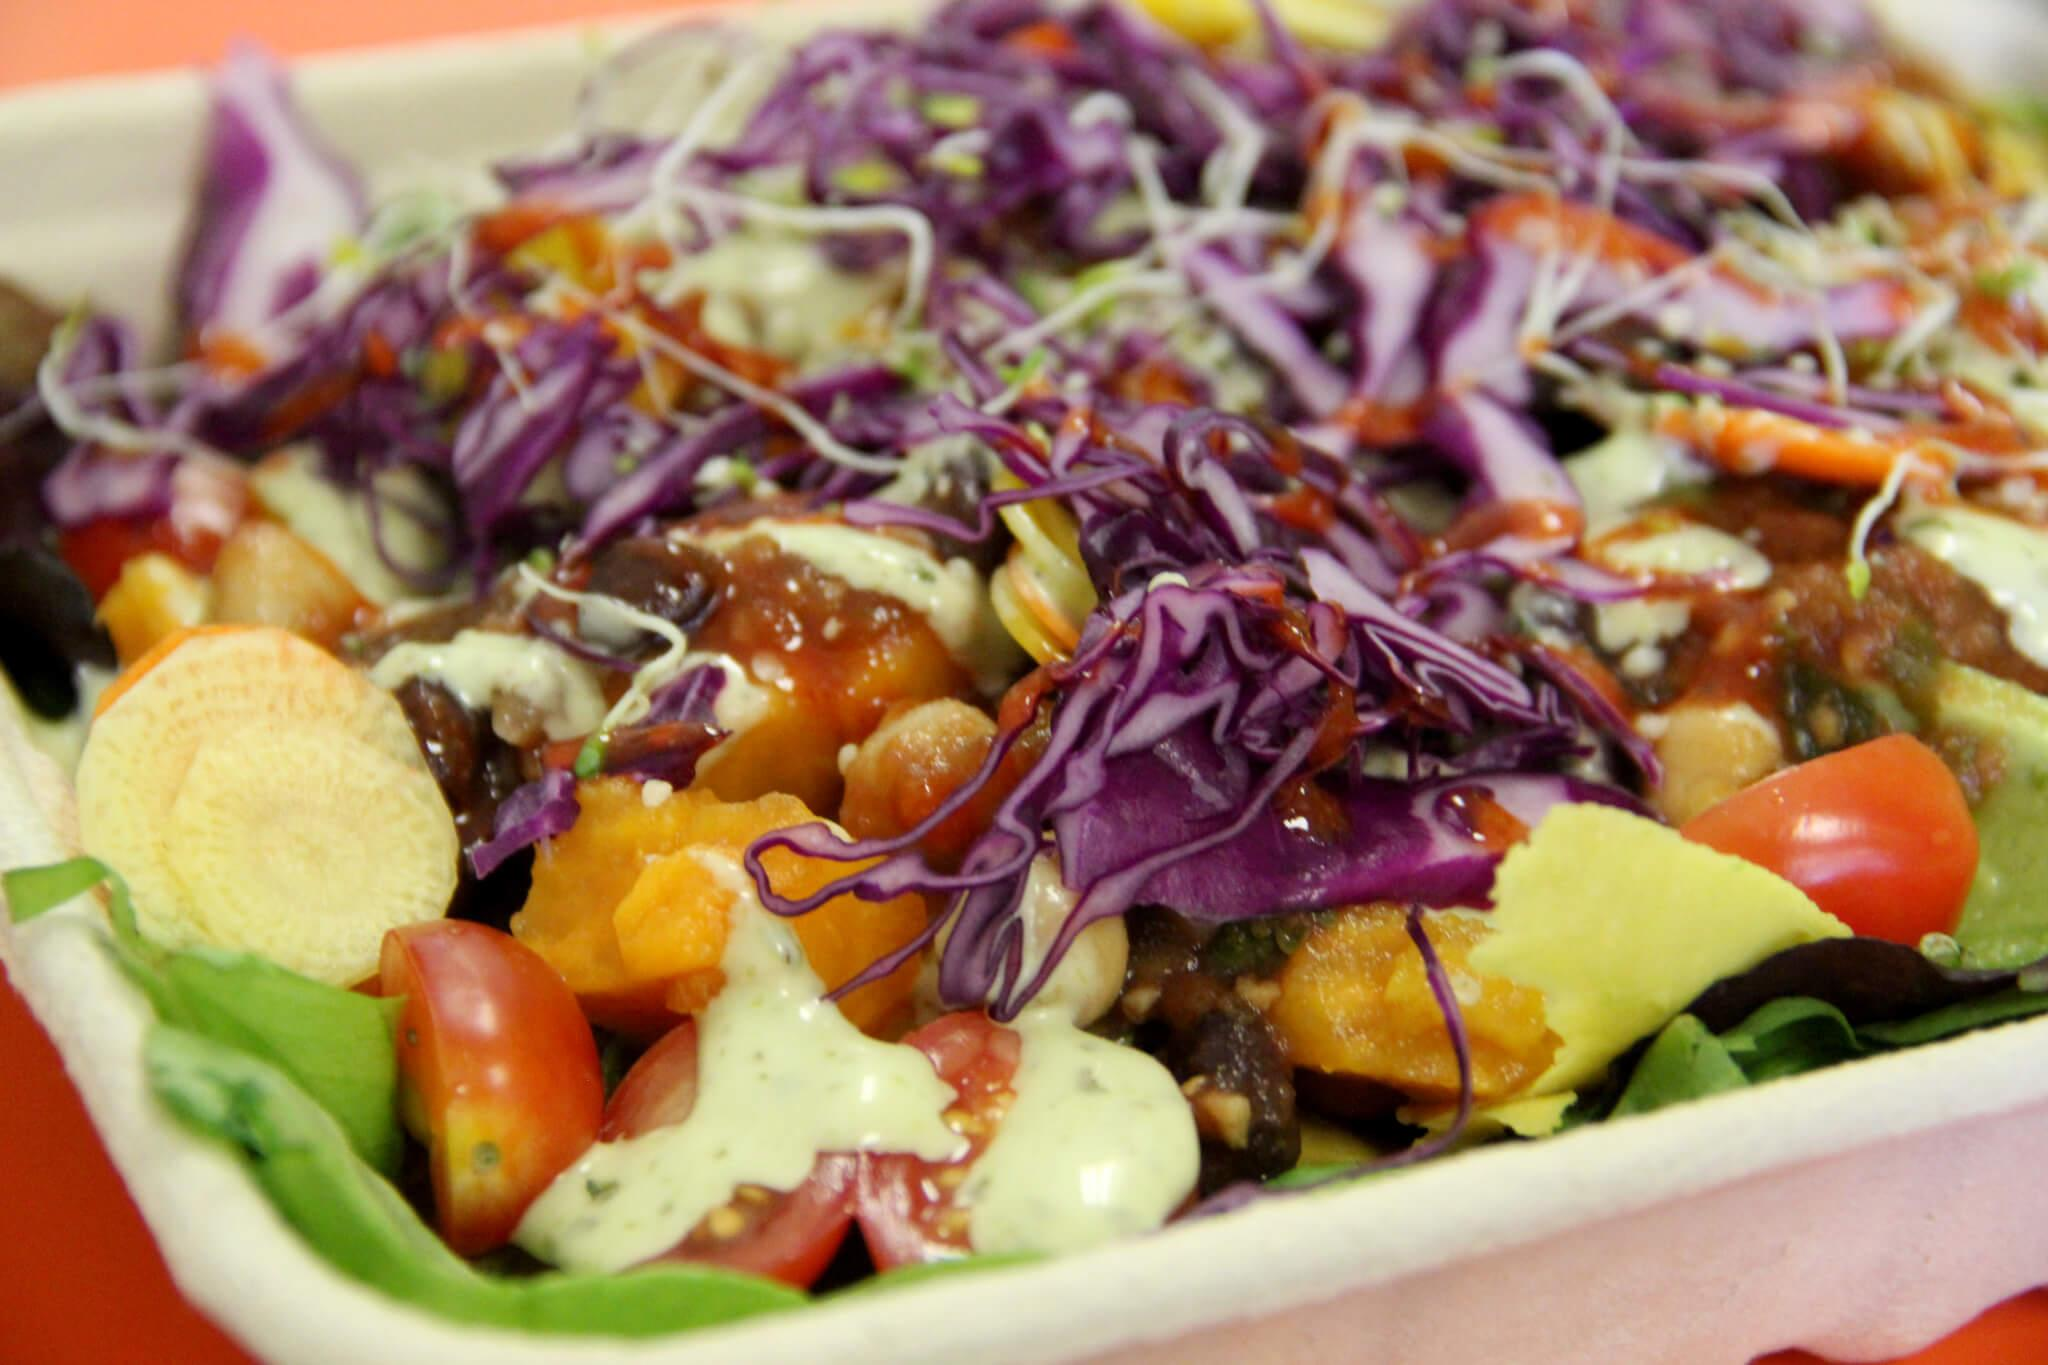 Organically Twisted serves up anything but a conventional menu